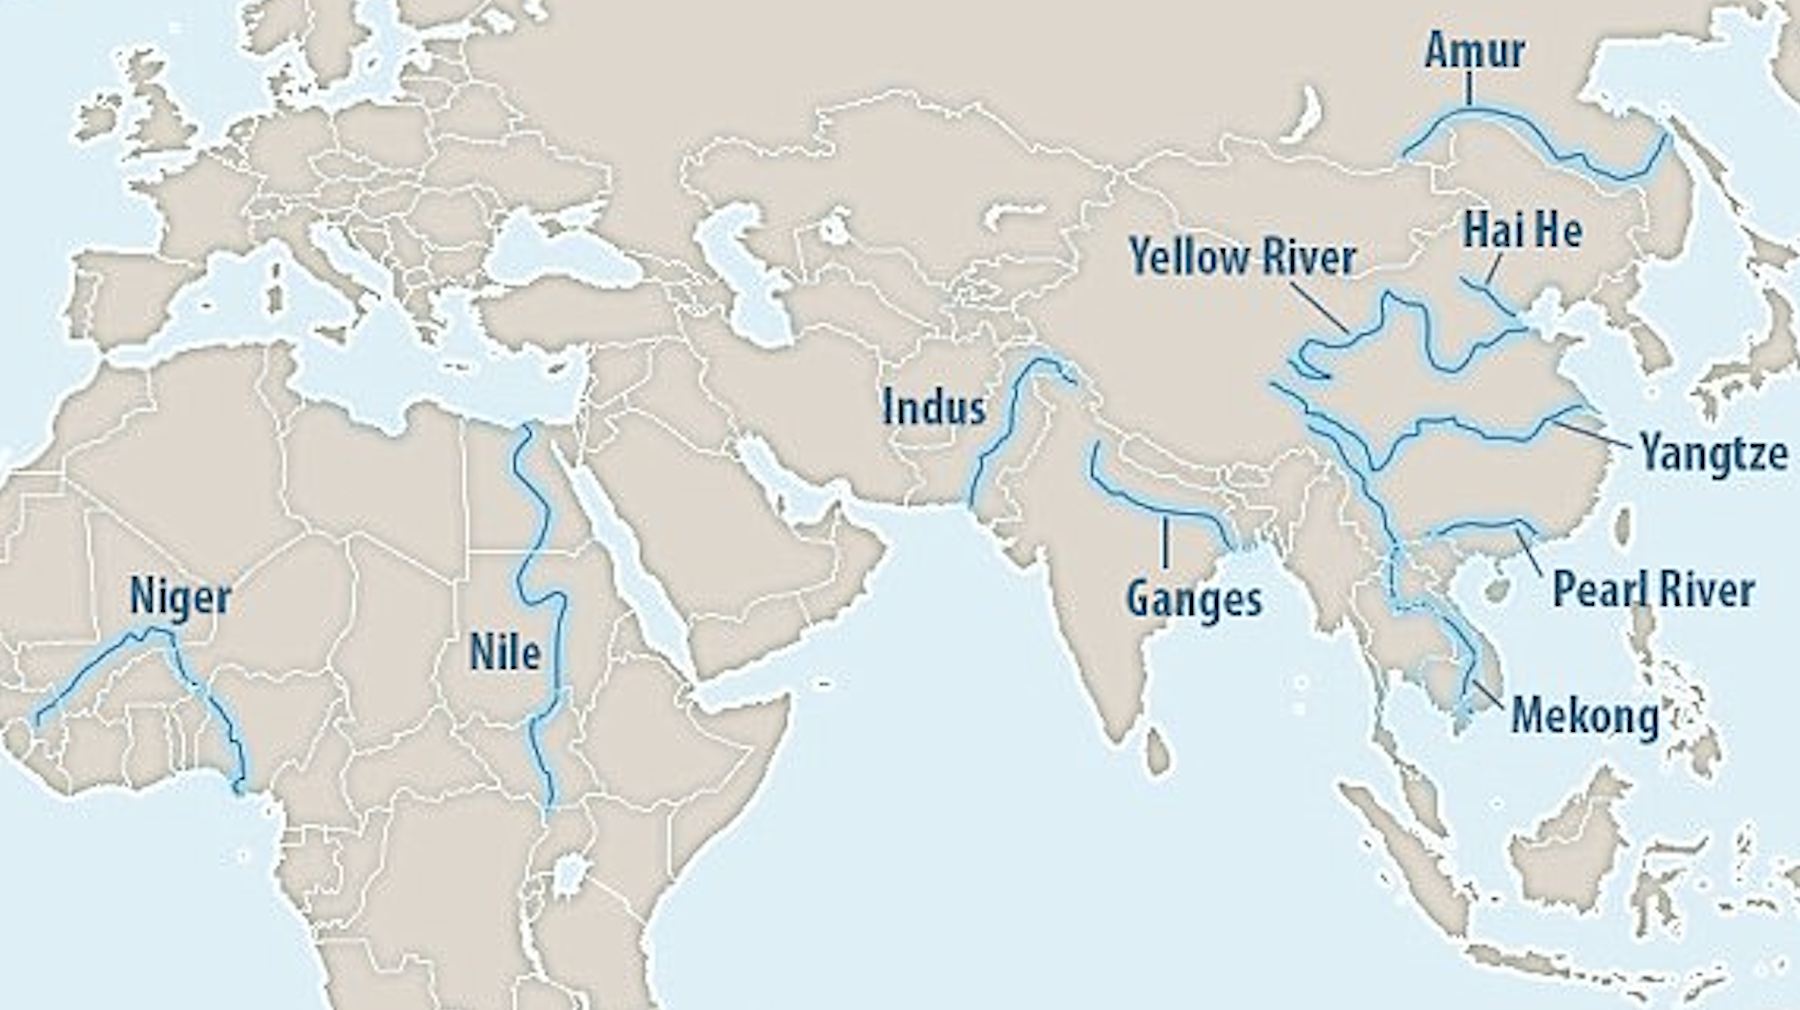 Yellow River World Map Trash rivers: these 10 rivers are responsible for most plastic